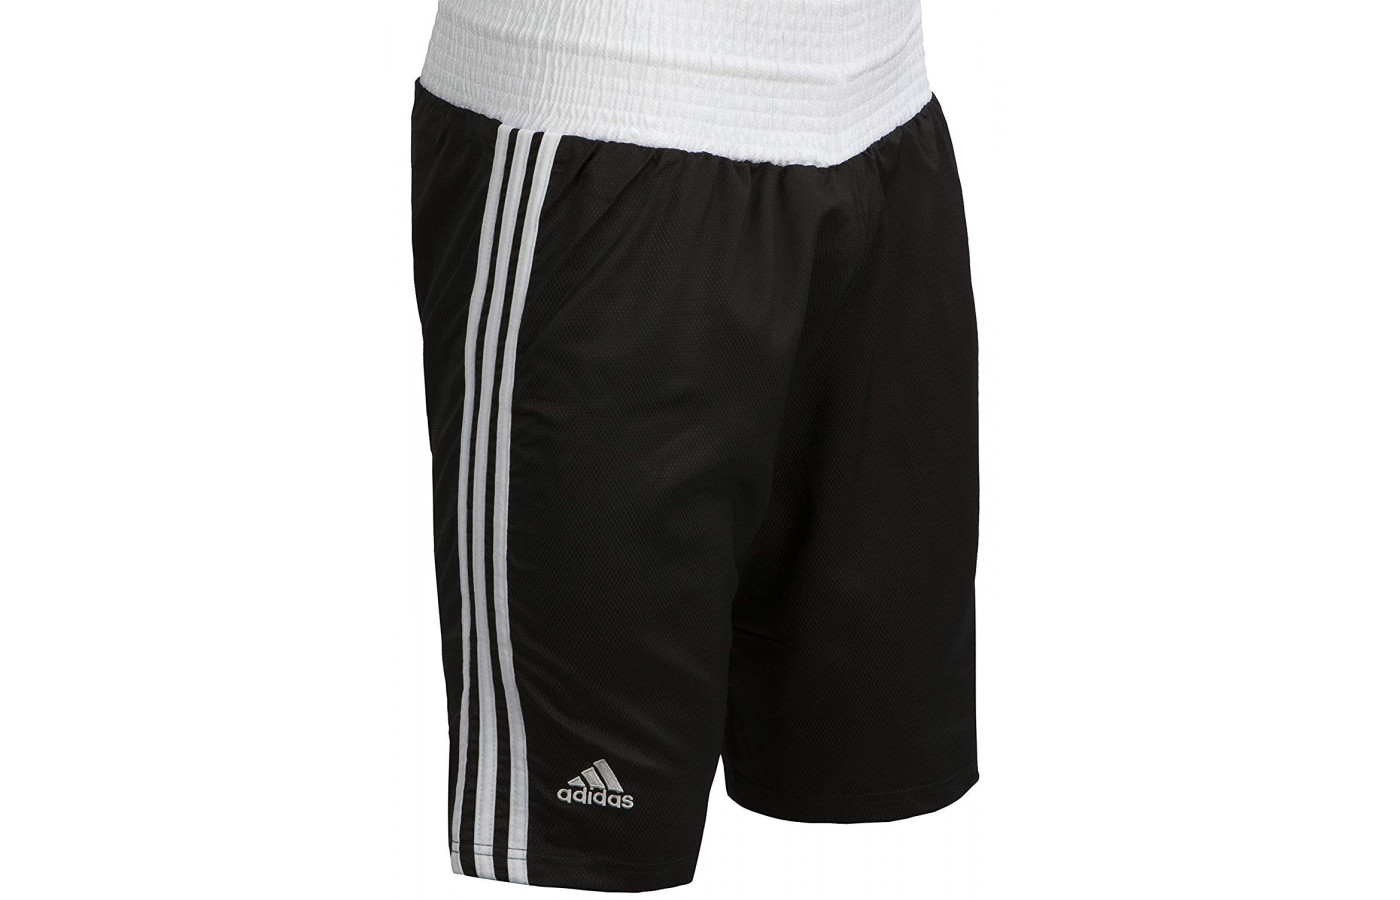 adidas boxing trunks black and white